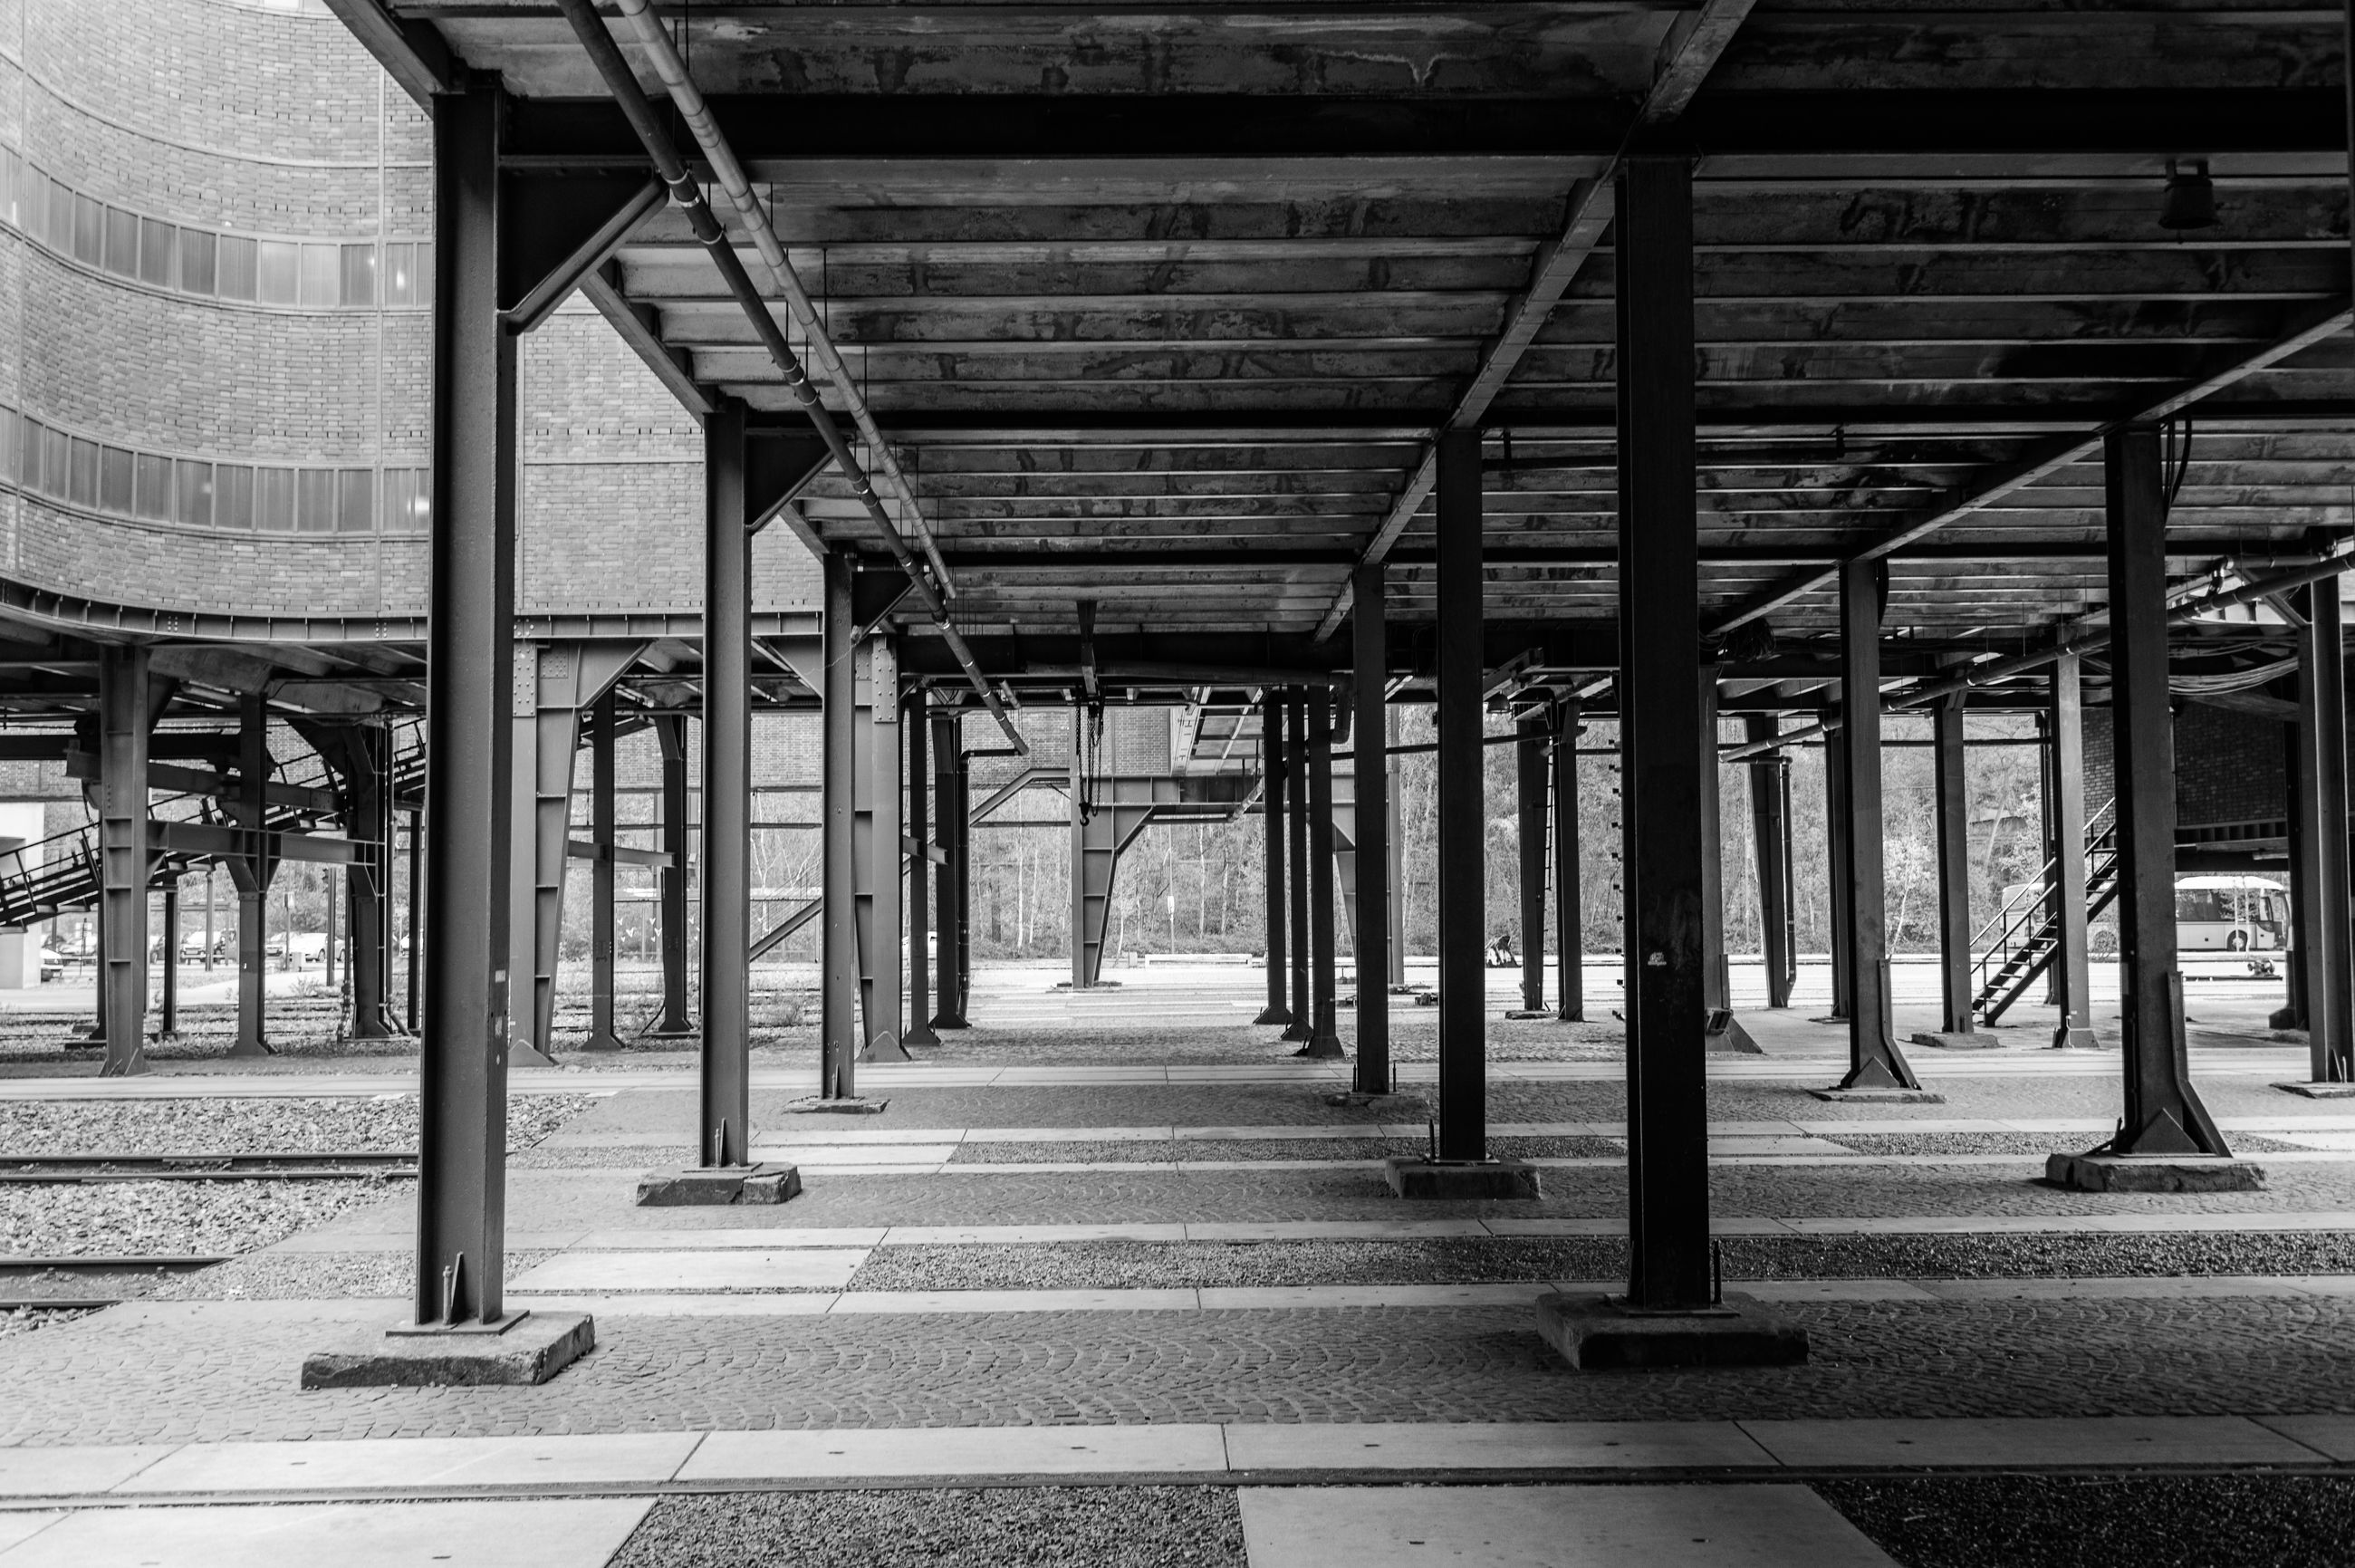 built structure, architecture, no people, indoors, day, metal, architectural column, travel destinations, city